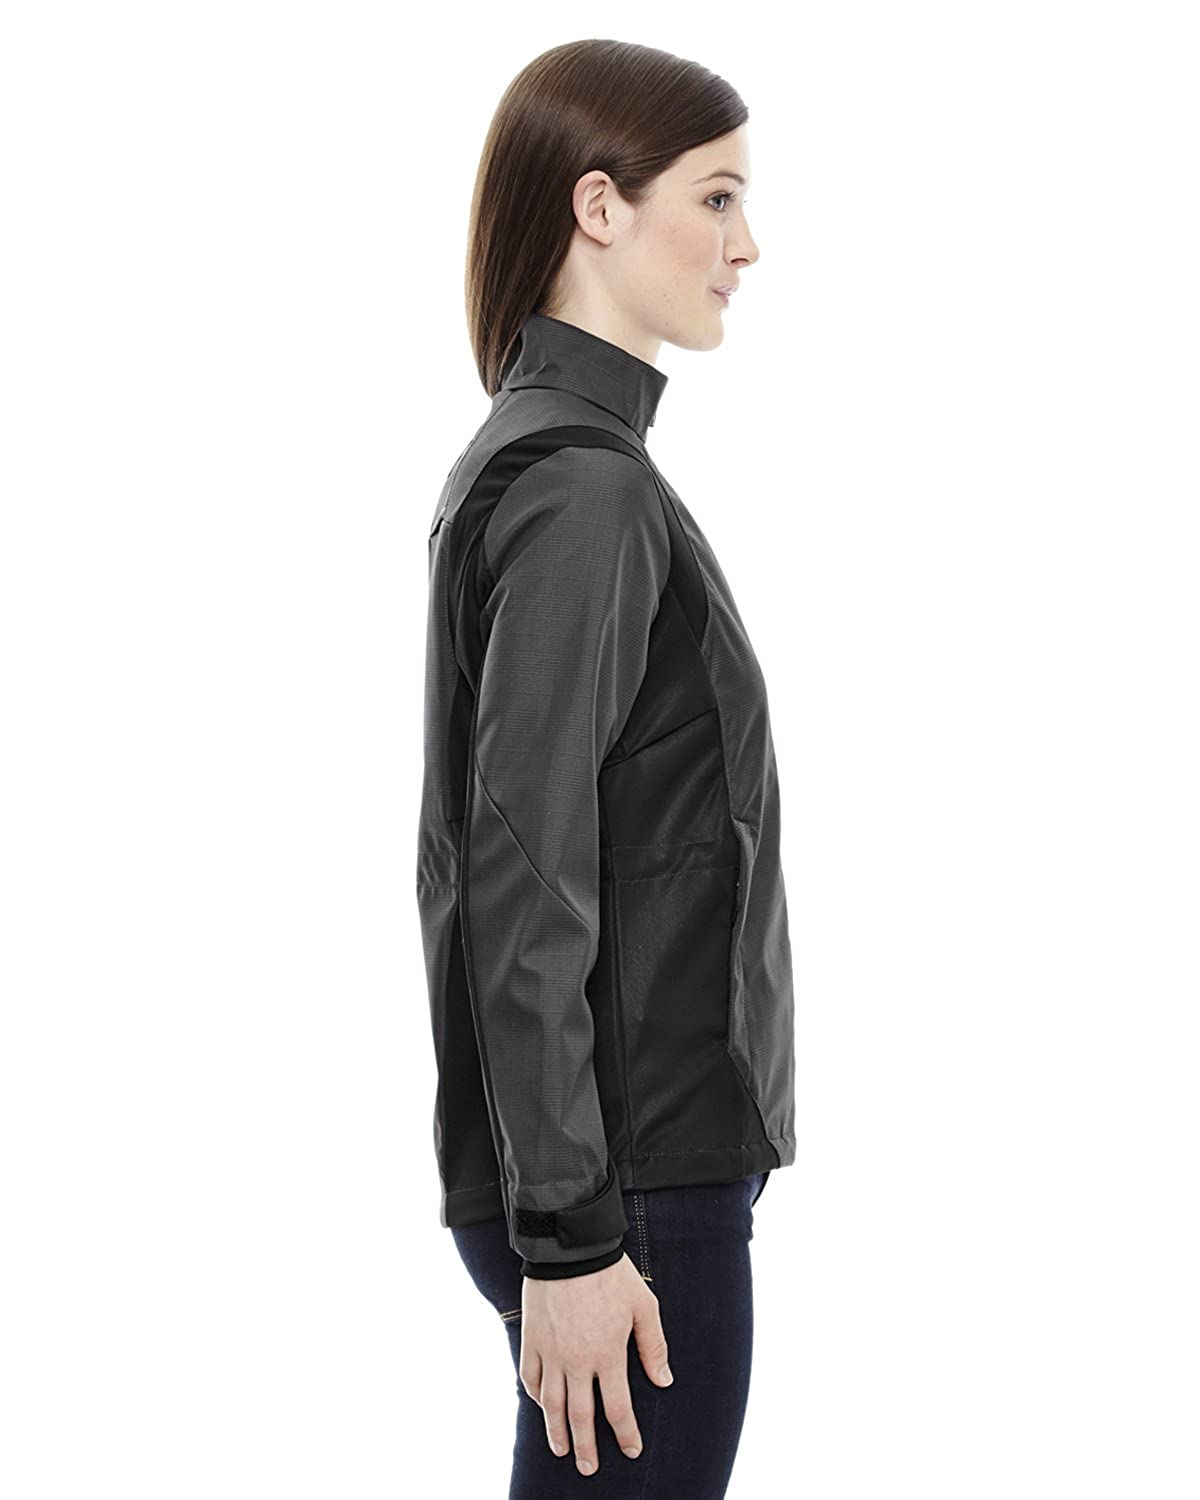 78686 Ash City North End Sport Blue womens 3-LAYER LIGHT BONDED SHELL JACKET